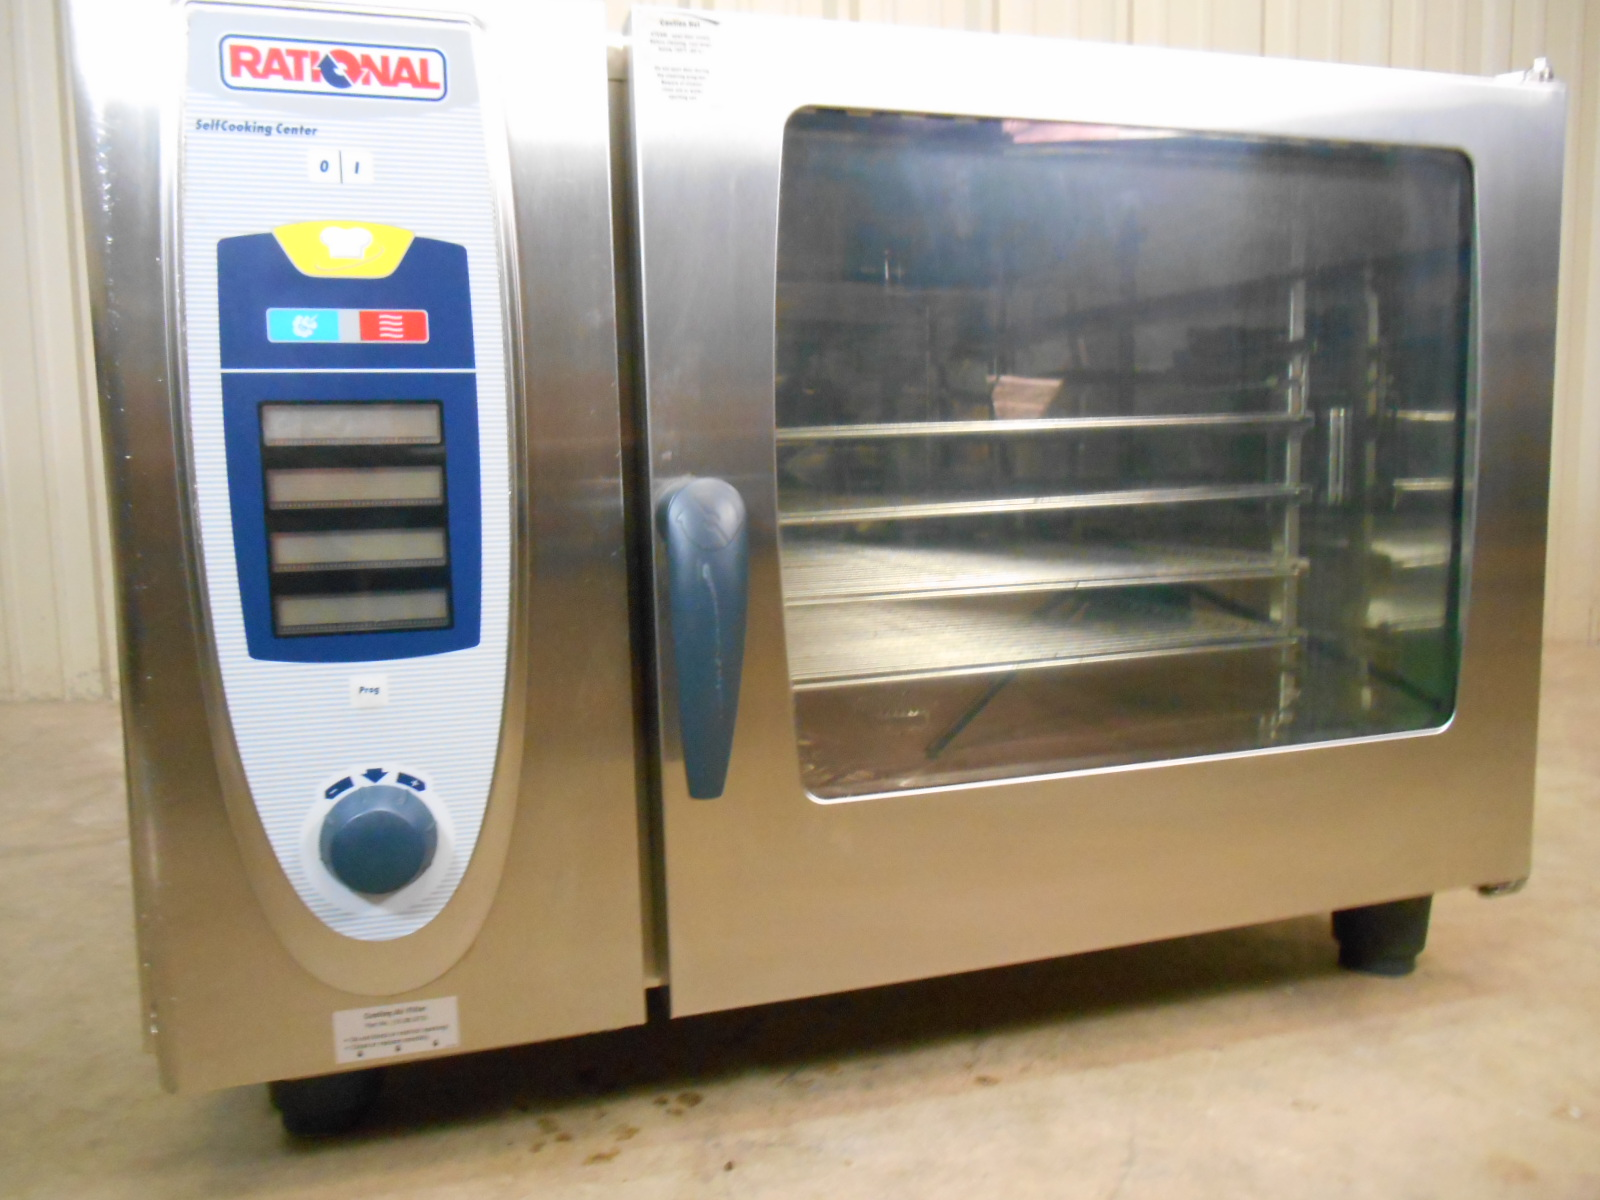 used rational scc 62 convection steam oven 3 phase 480 volt very clean. Black Bedroom Furniture Sets. Home Design Ideas